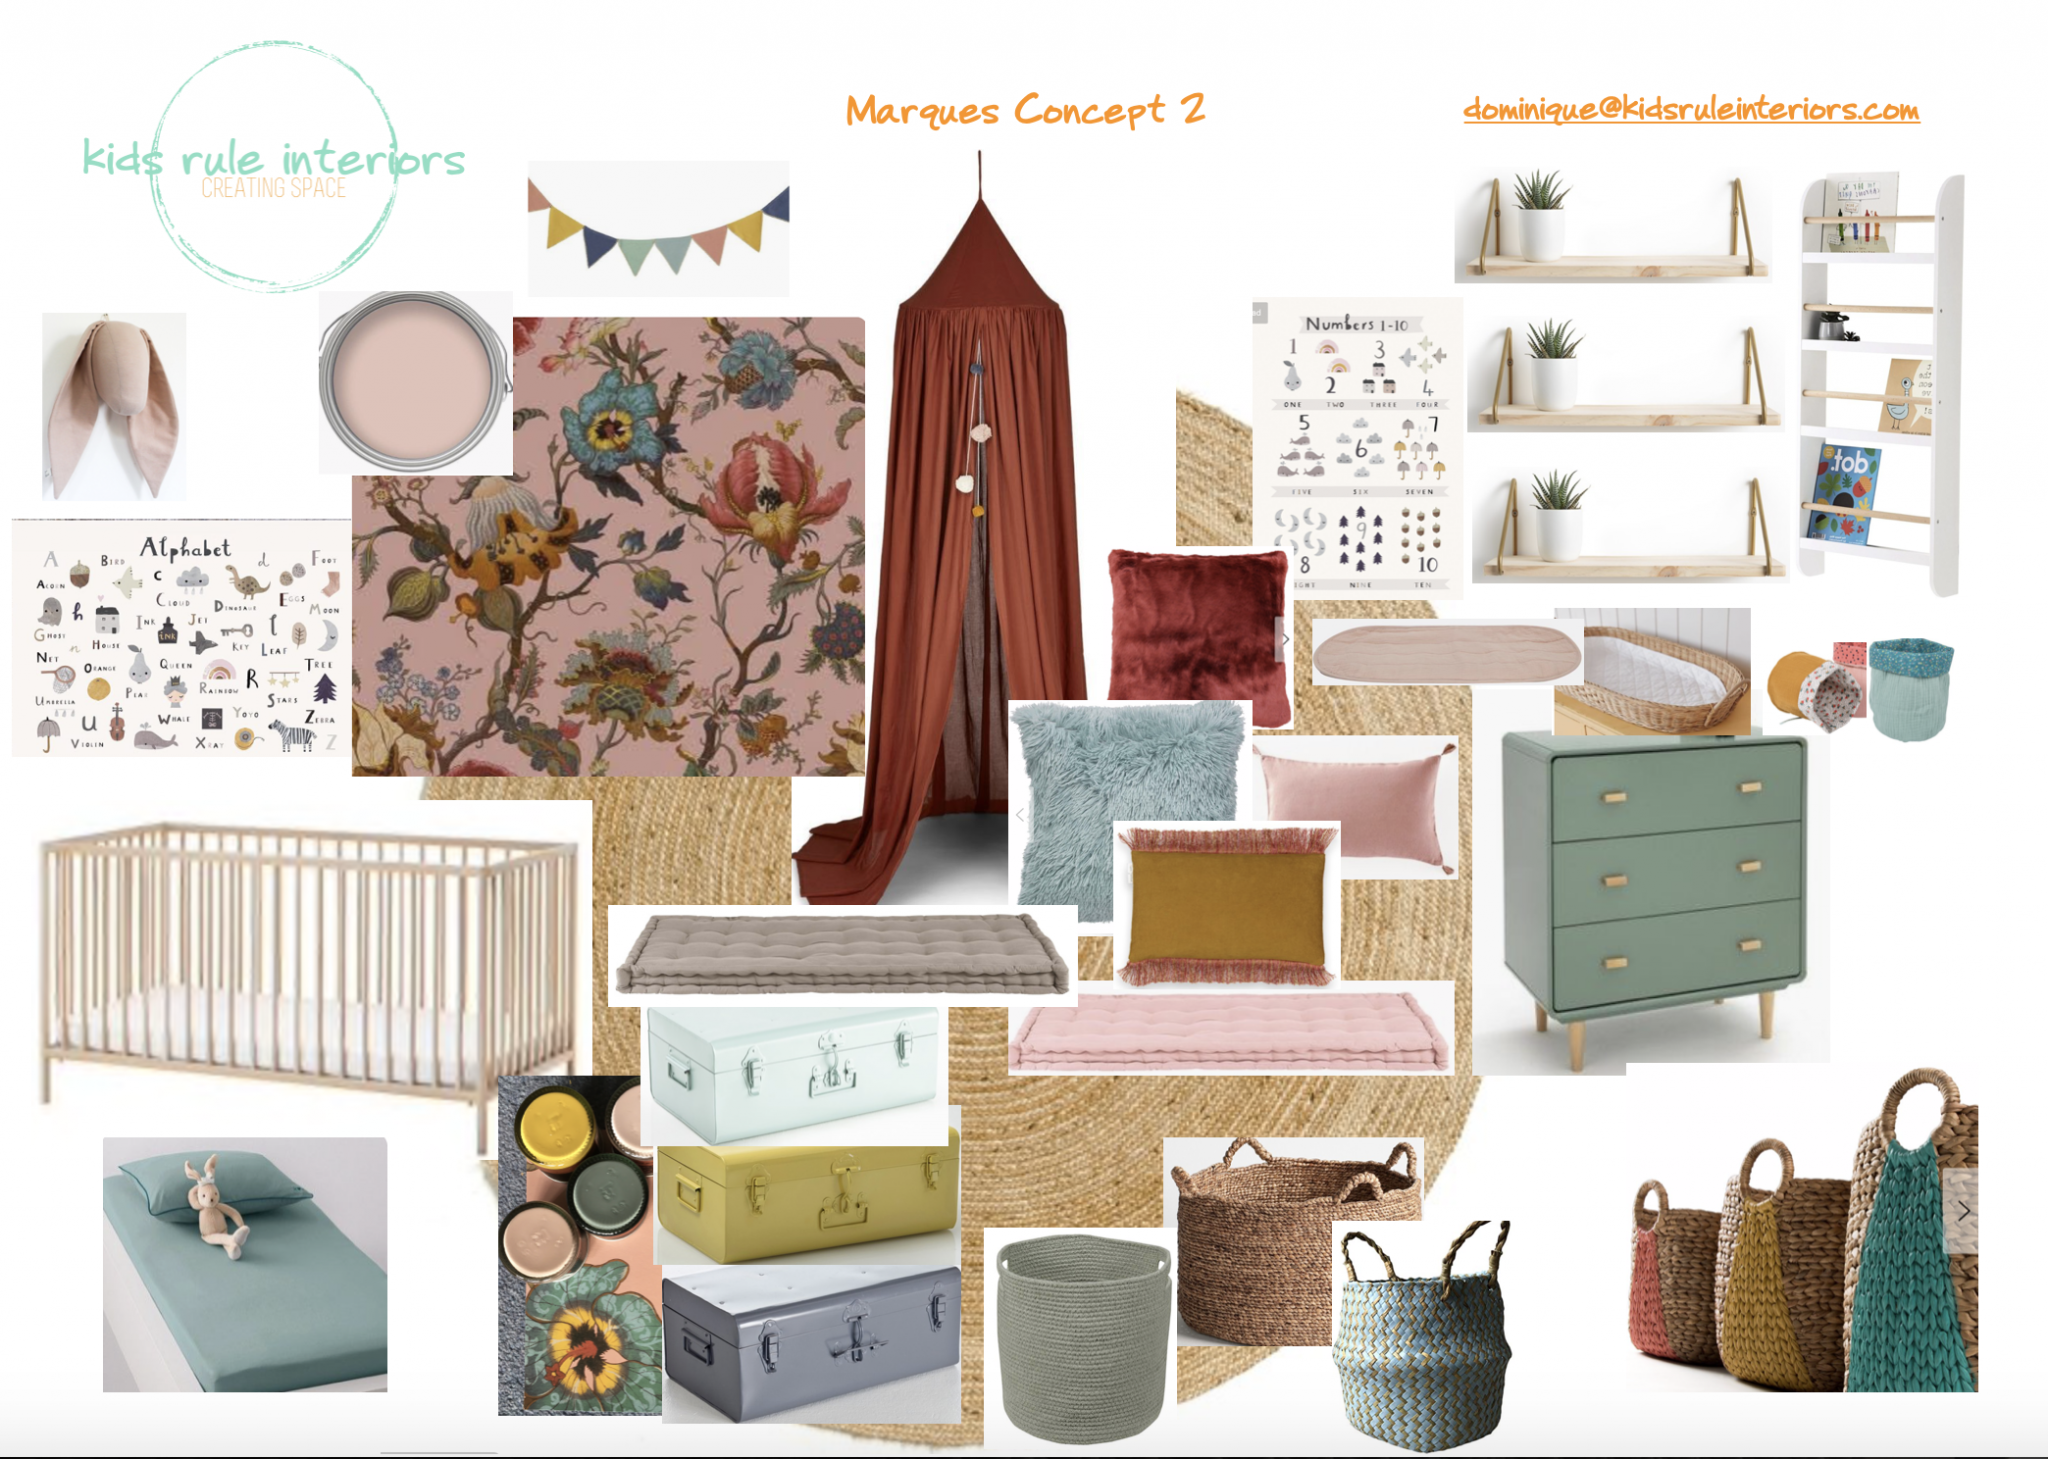 Baby girl nursery concept by Kids Rule interiors with bold floral wallpaper with blush pink, muted teal and rust accents with rustic wooden furniture and woven details.